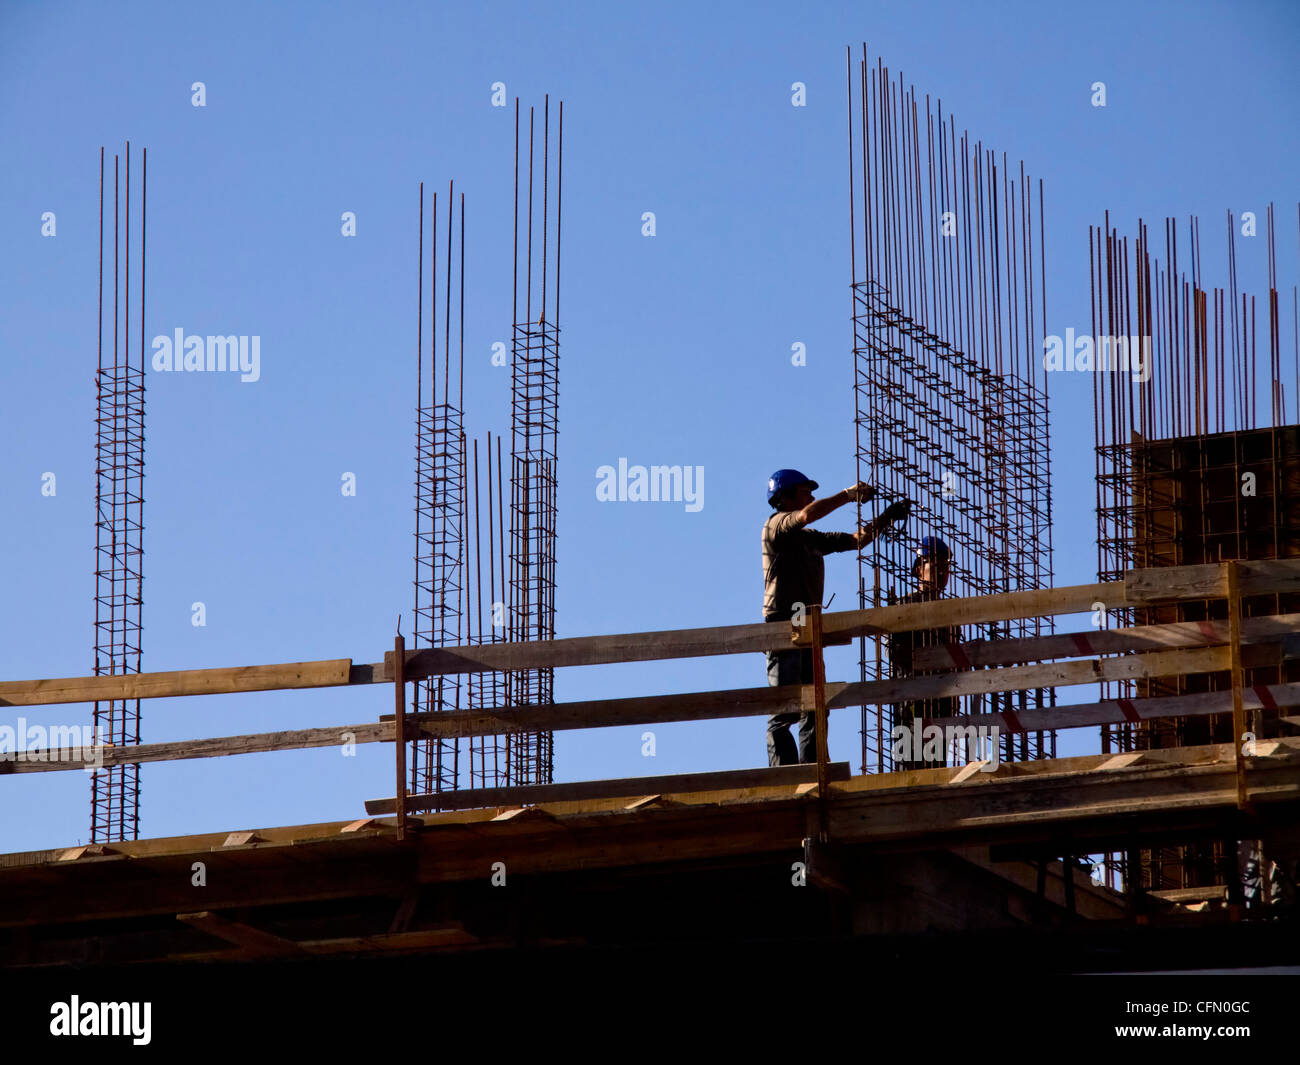 Construction workers at a construction site - Stock Image